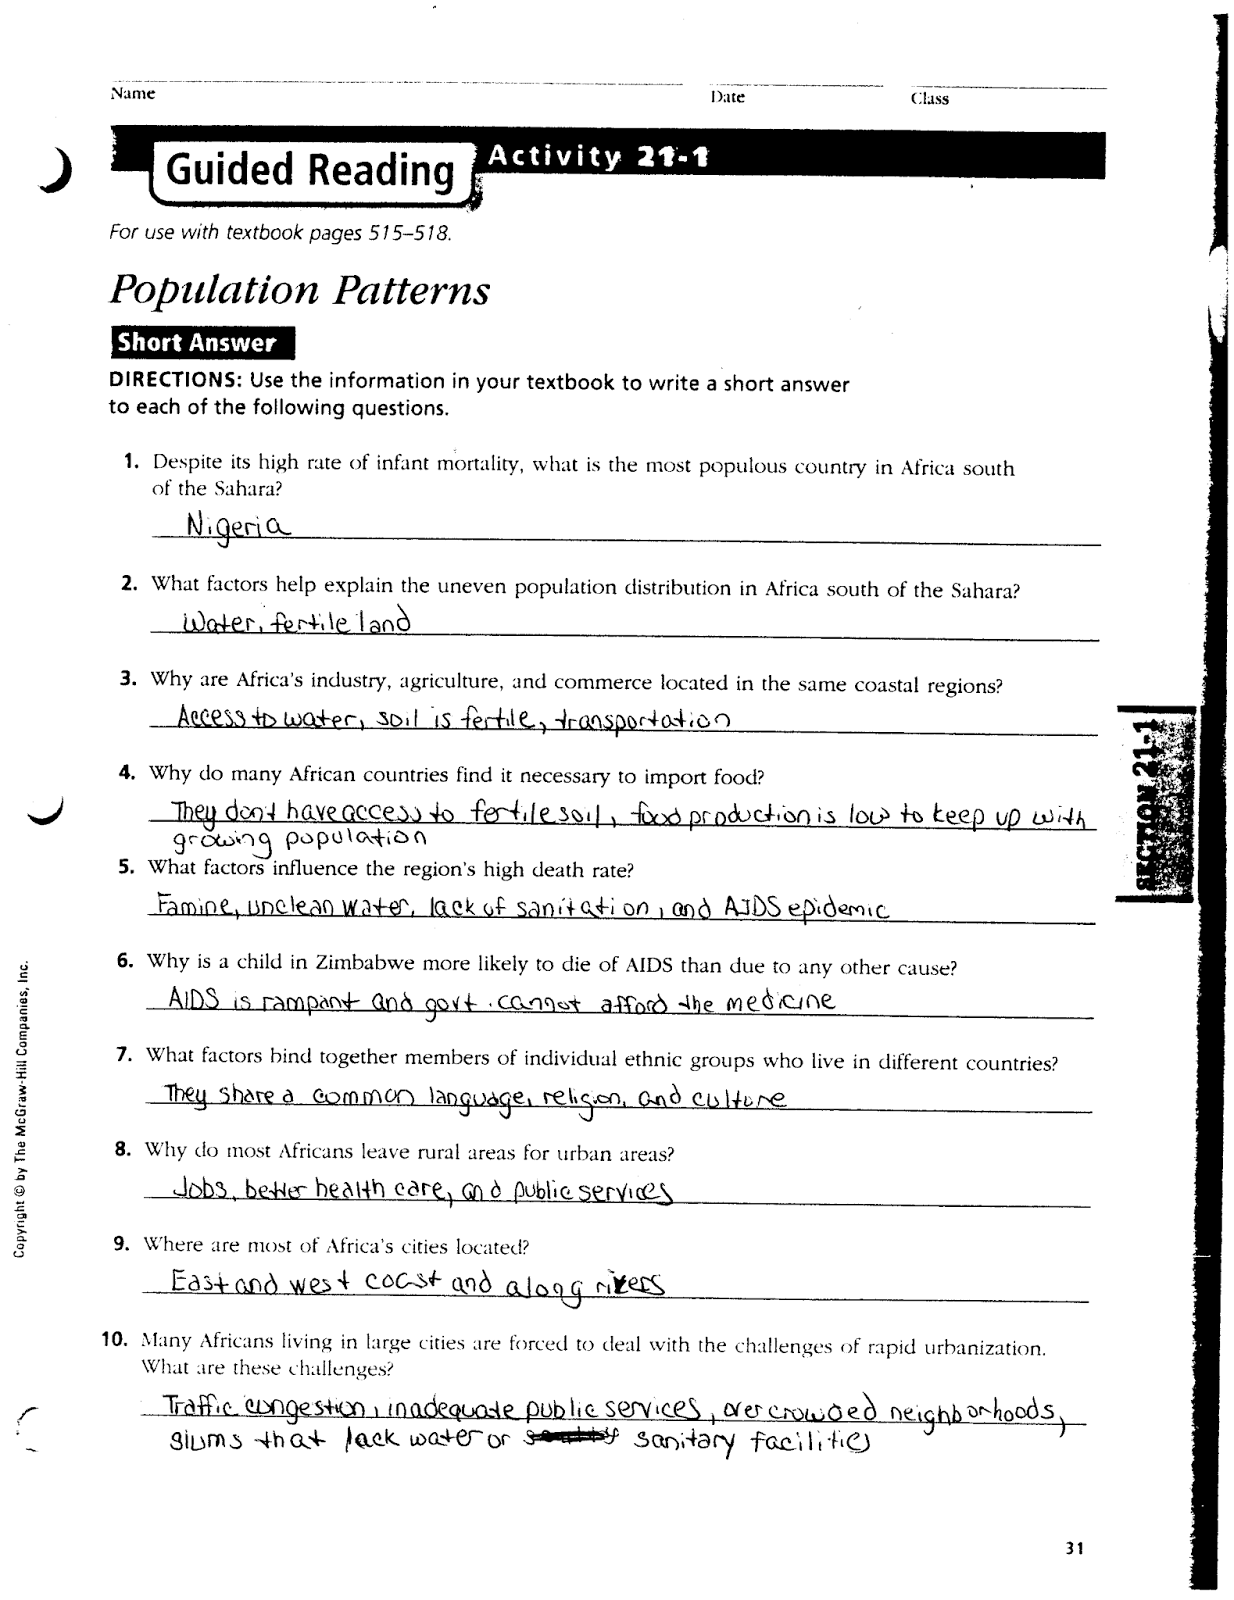 chapter 21 section 2 guided reading various owner manual guide u2022 rh justk co chapter 21 section 2 guided reading the reign of louis xiv answers chapter 21 section 2 guided reading answers